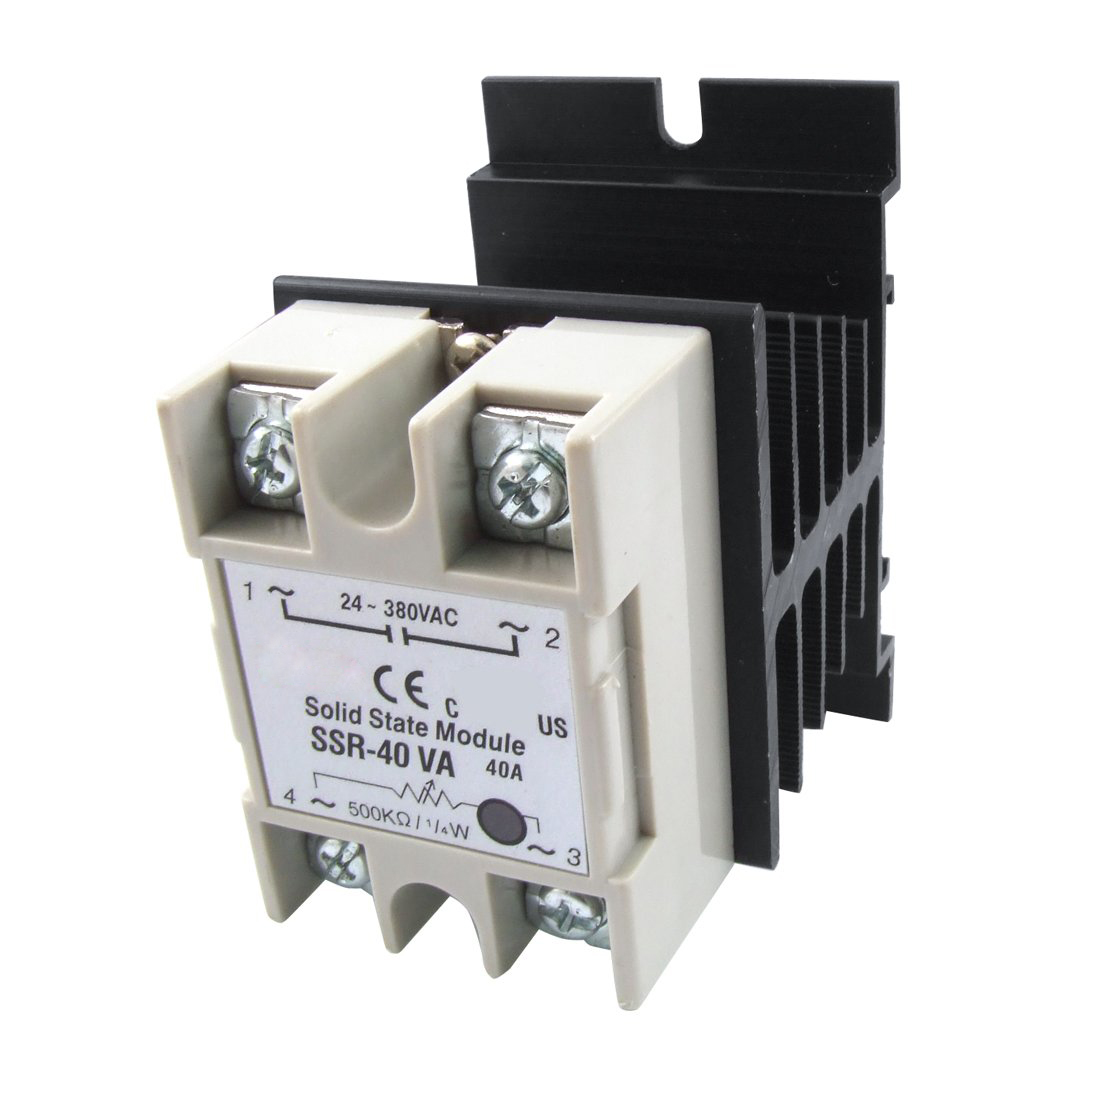 VolTage Resistance Regulator Solid State Relay SSR 40A 24-380V AC w Heat SInk 25a ac 380v solid state relay voltage resistance regulator w aluminum heat sink